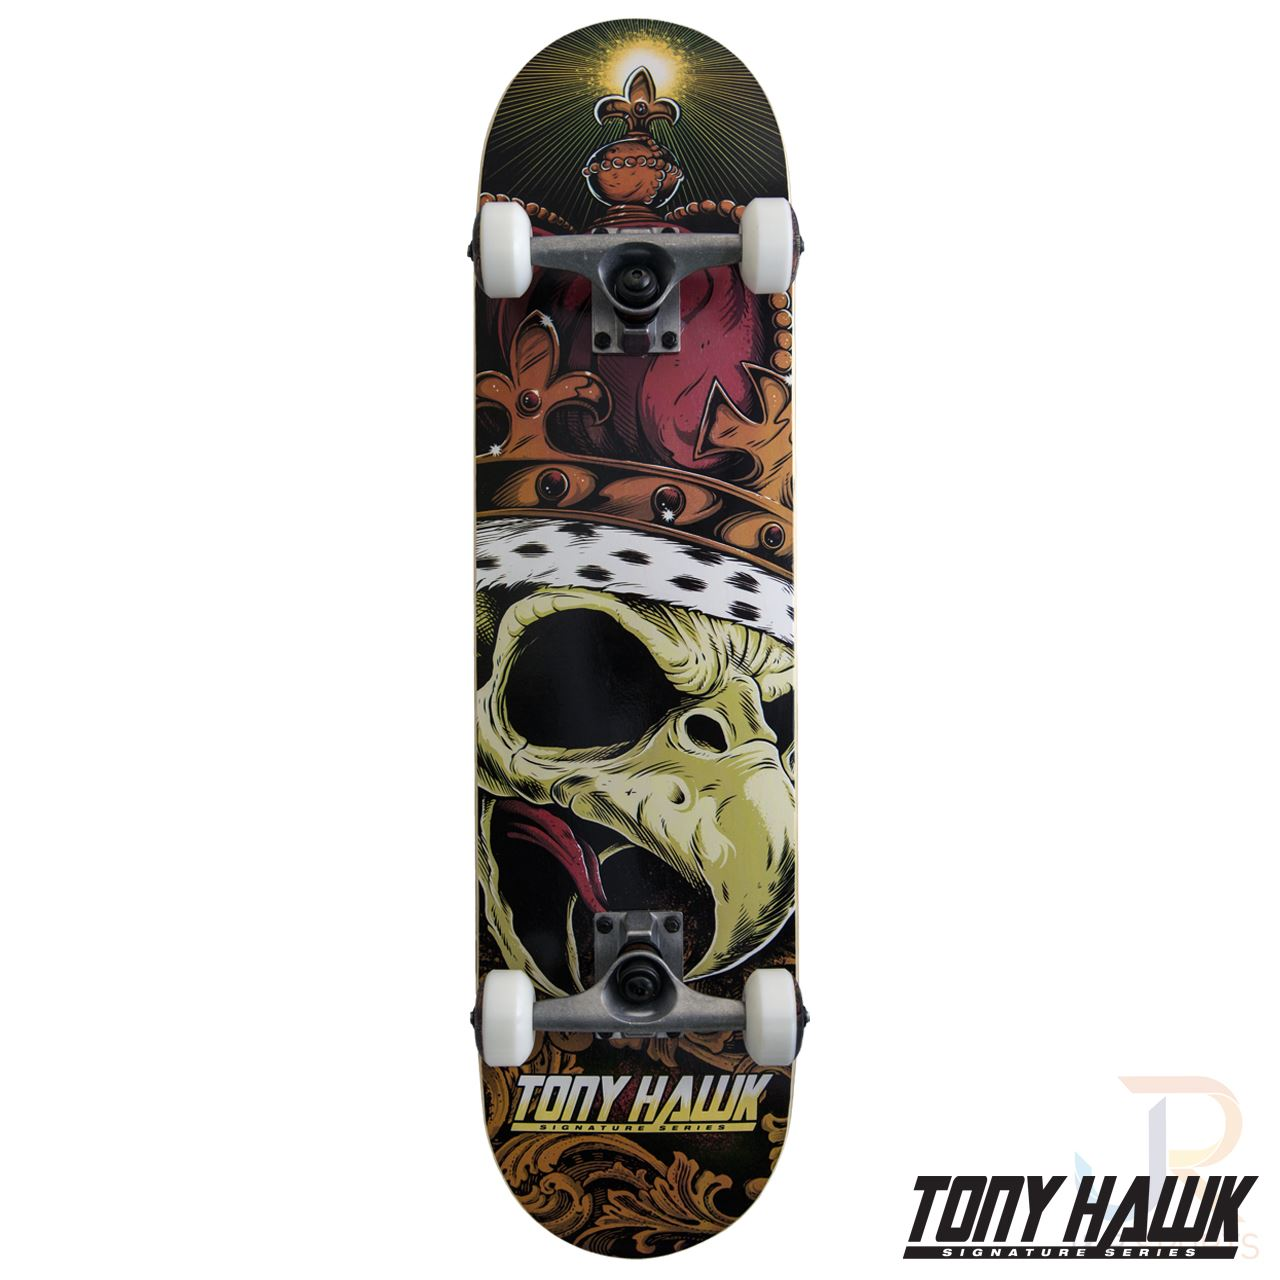 540 Series Hawk Crowned Skateboard from Tony Hawk ...